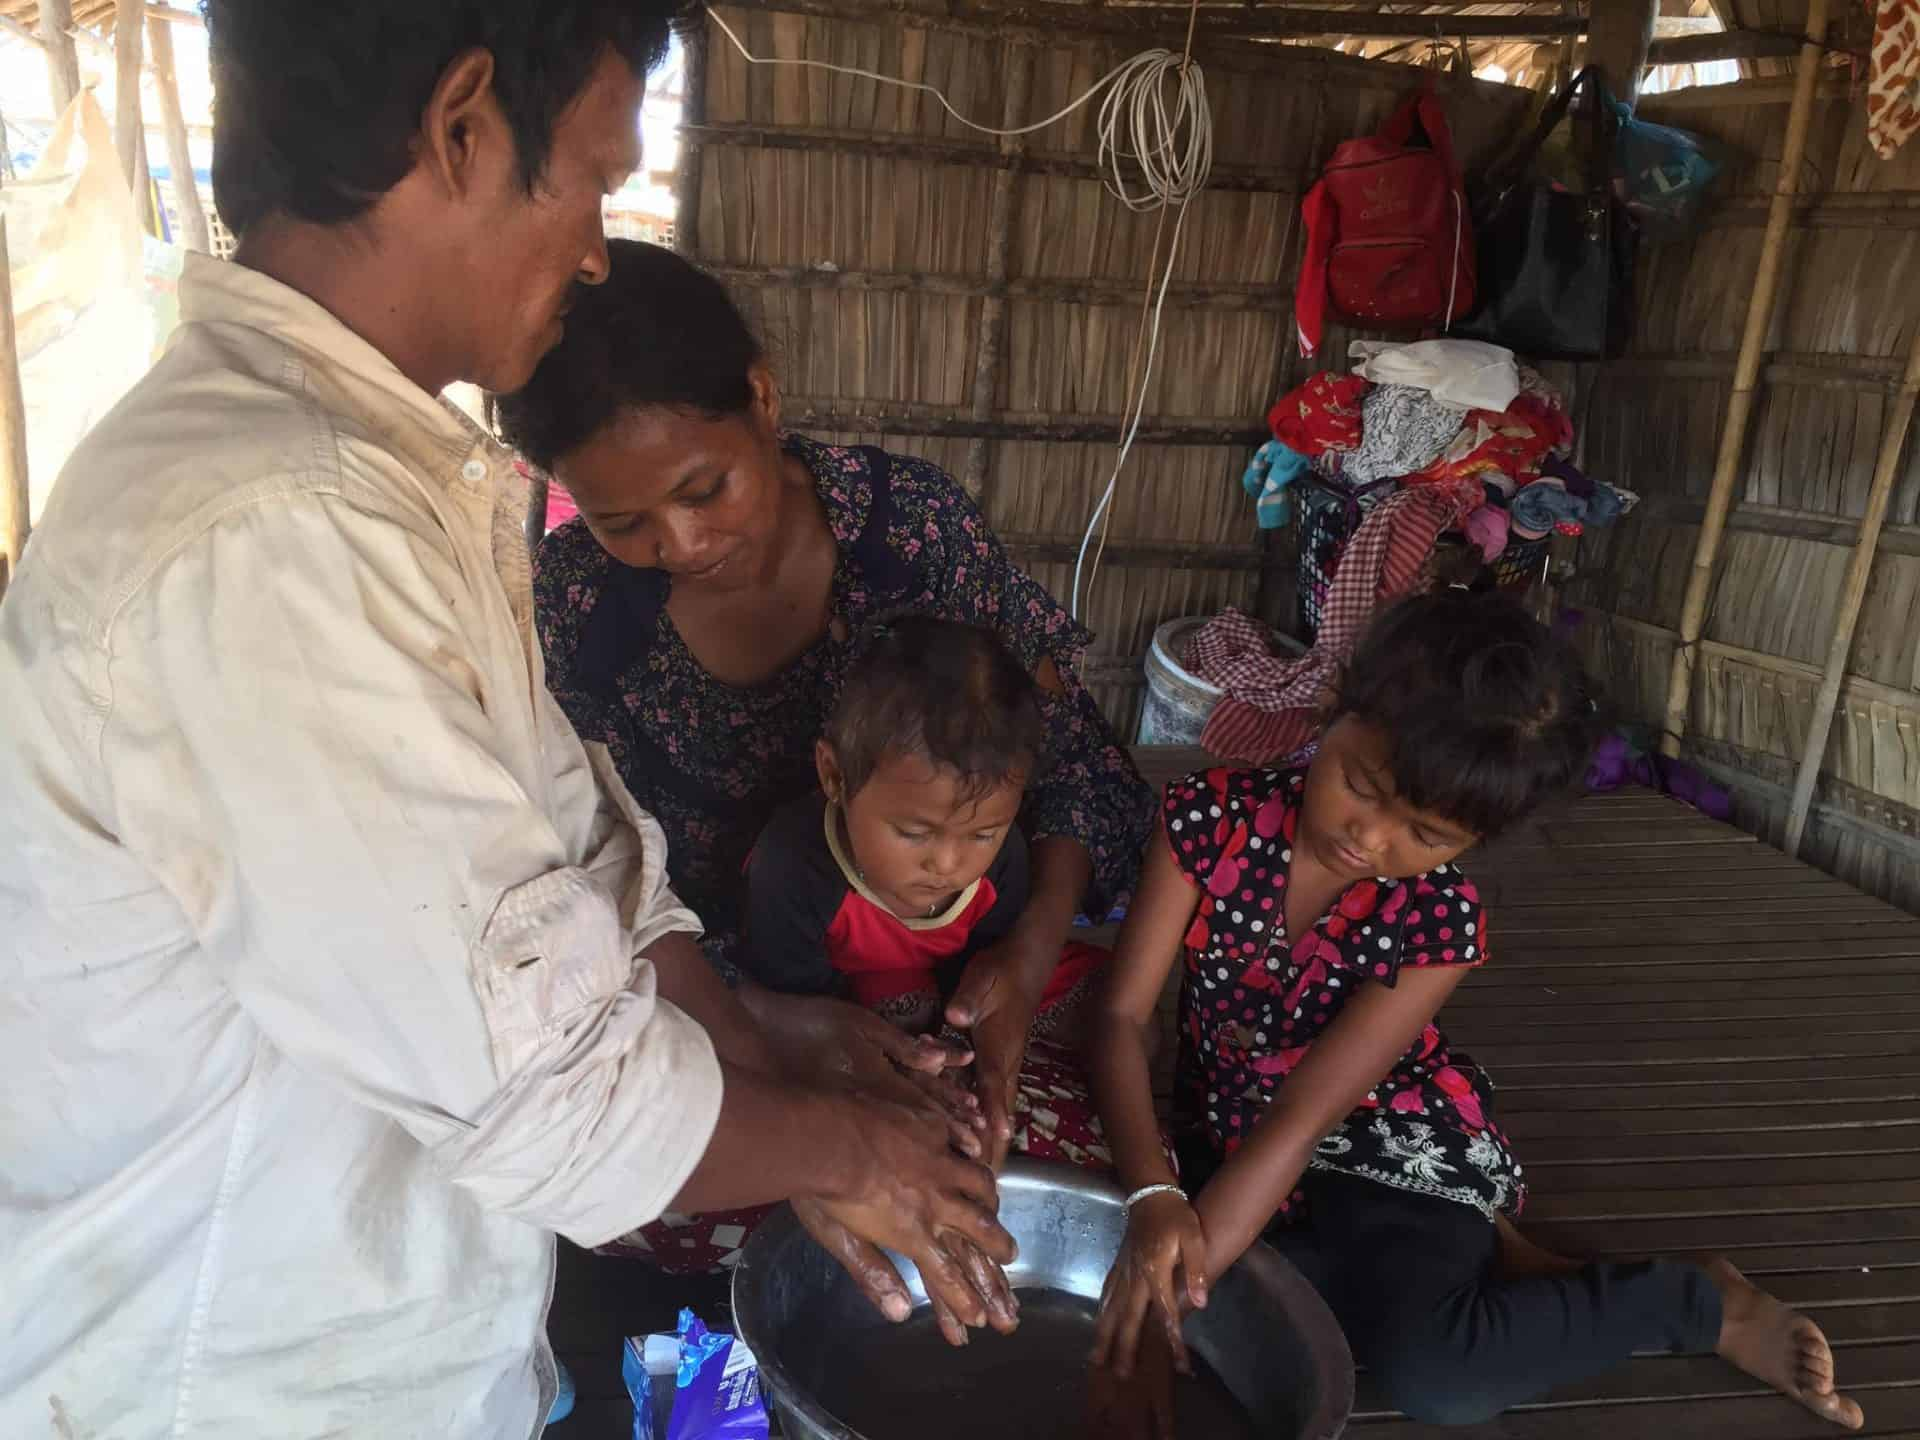 One of the families working with CIF, practicing proper hygiene.